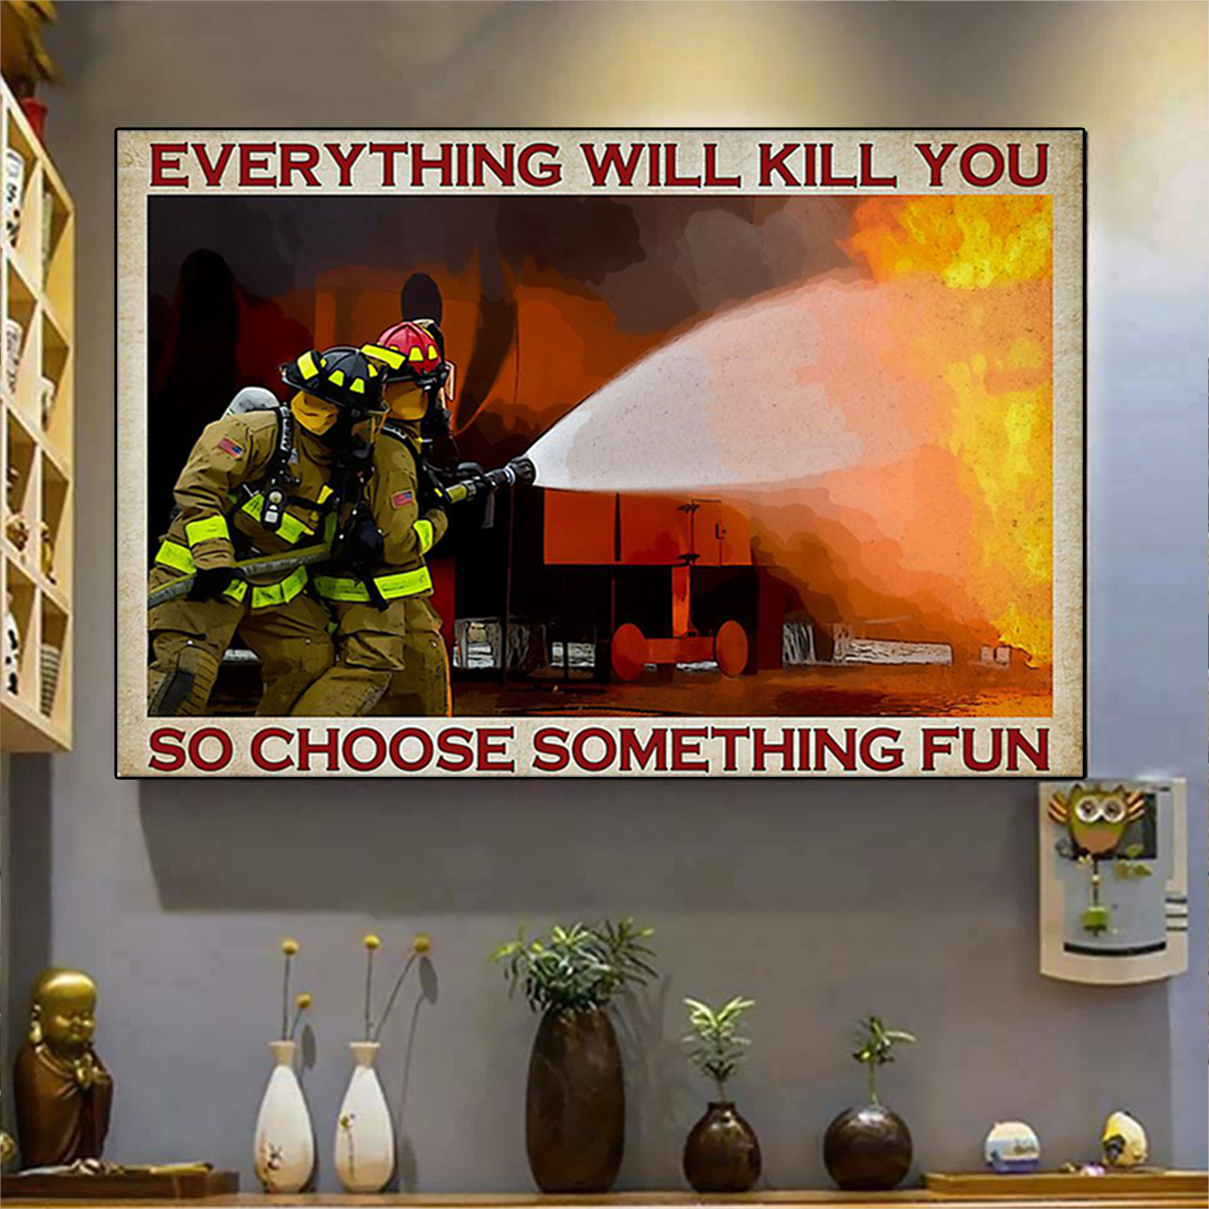 FIREFIGHTER Everything will kill you so choose something fun poster A1